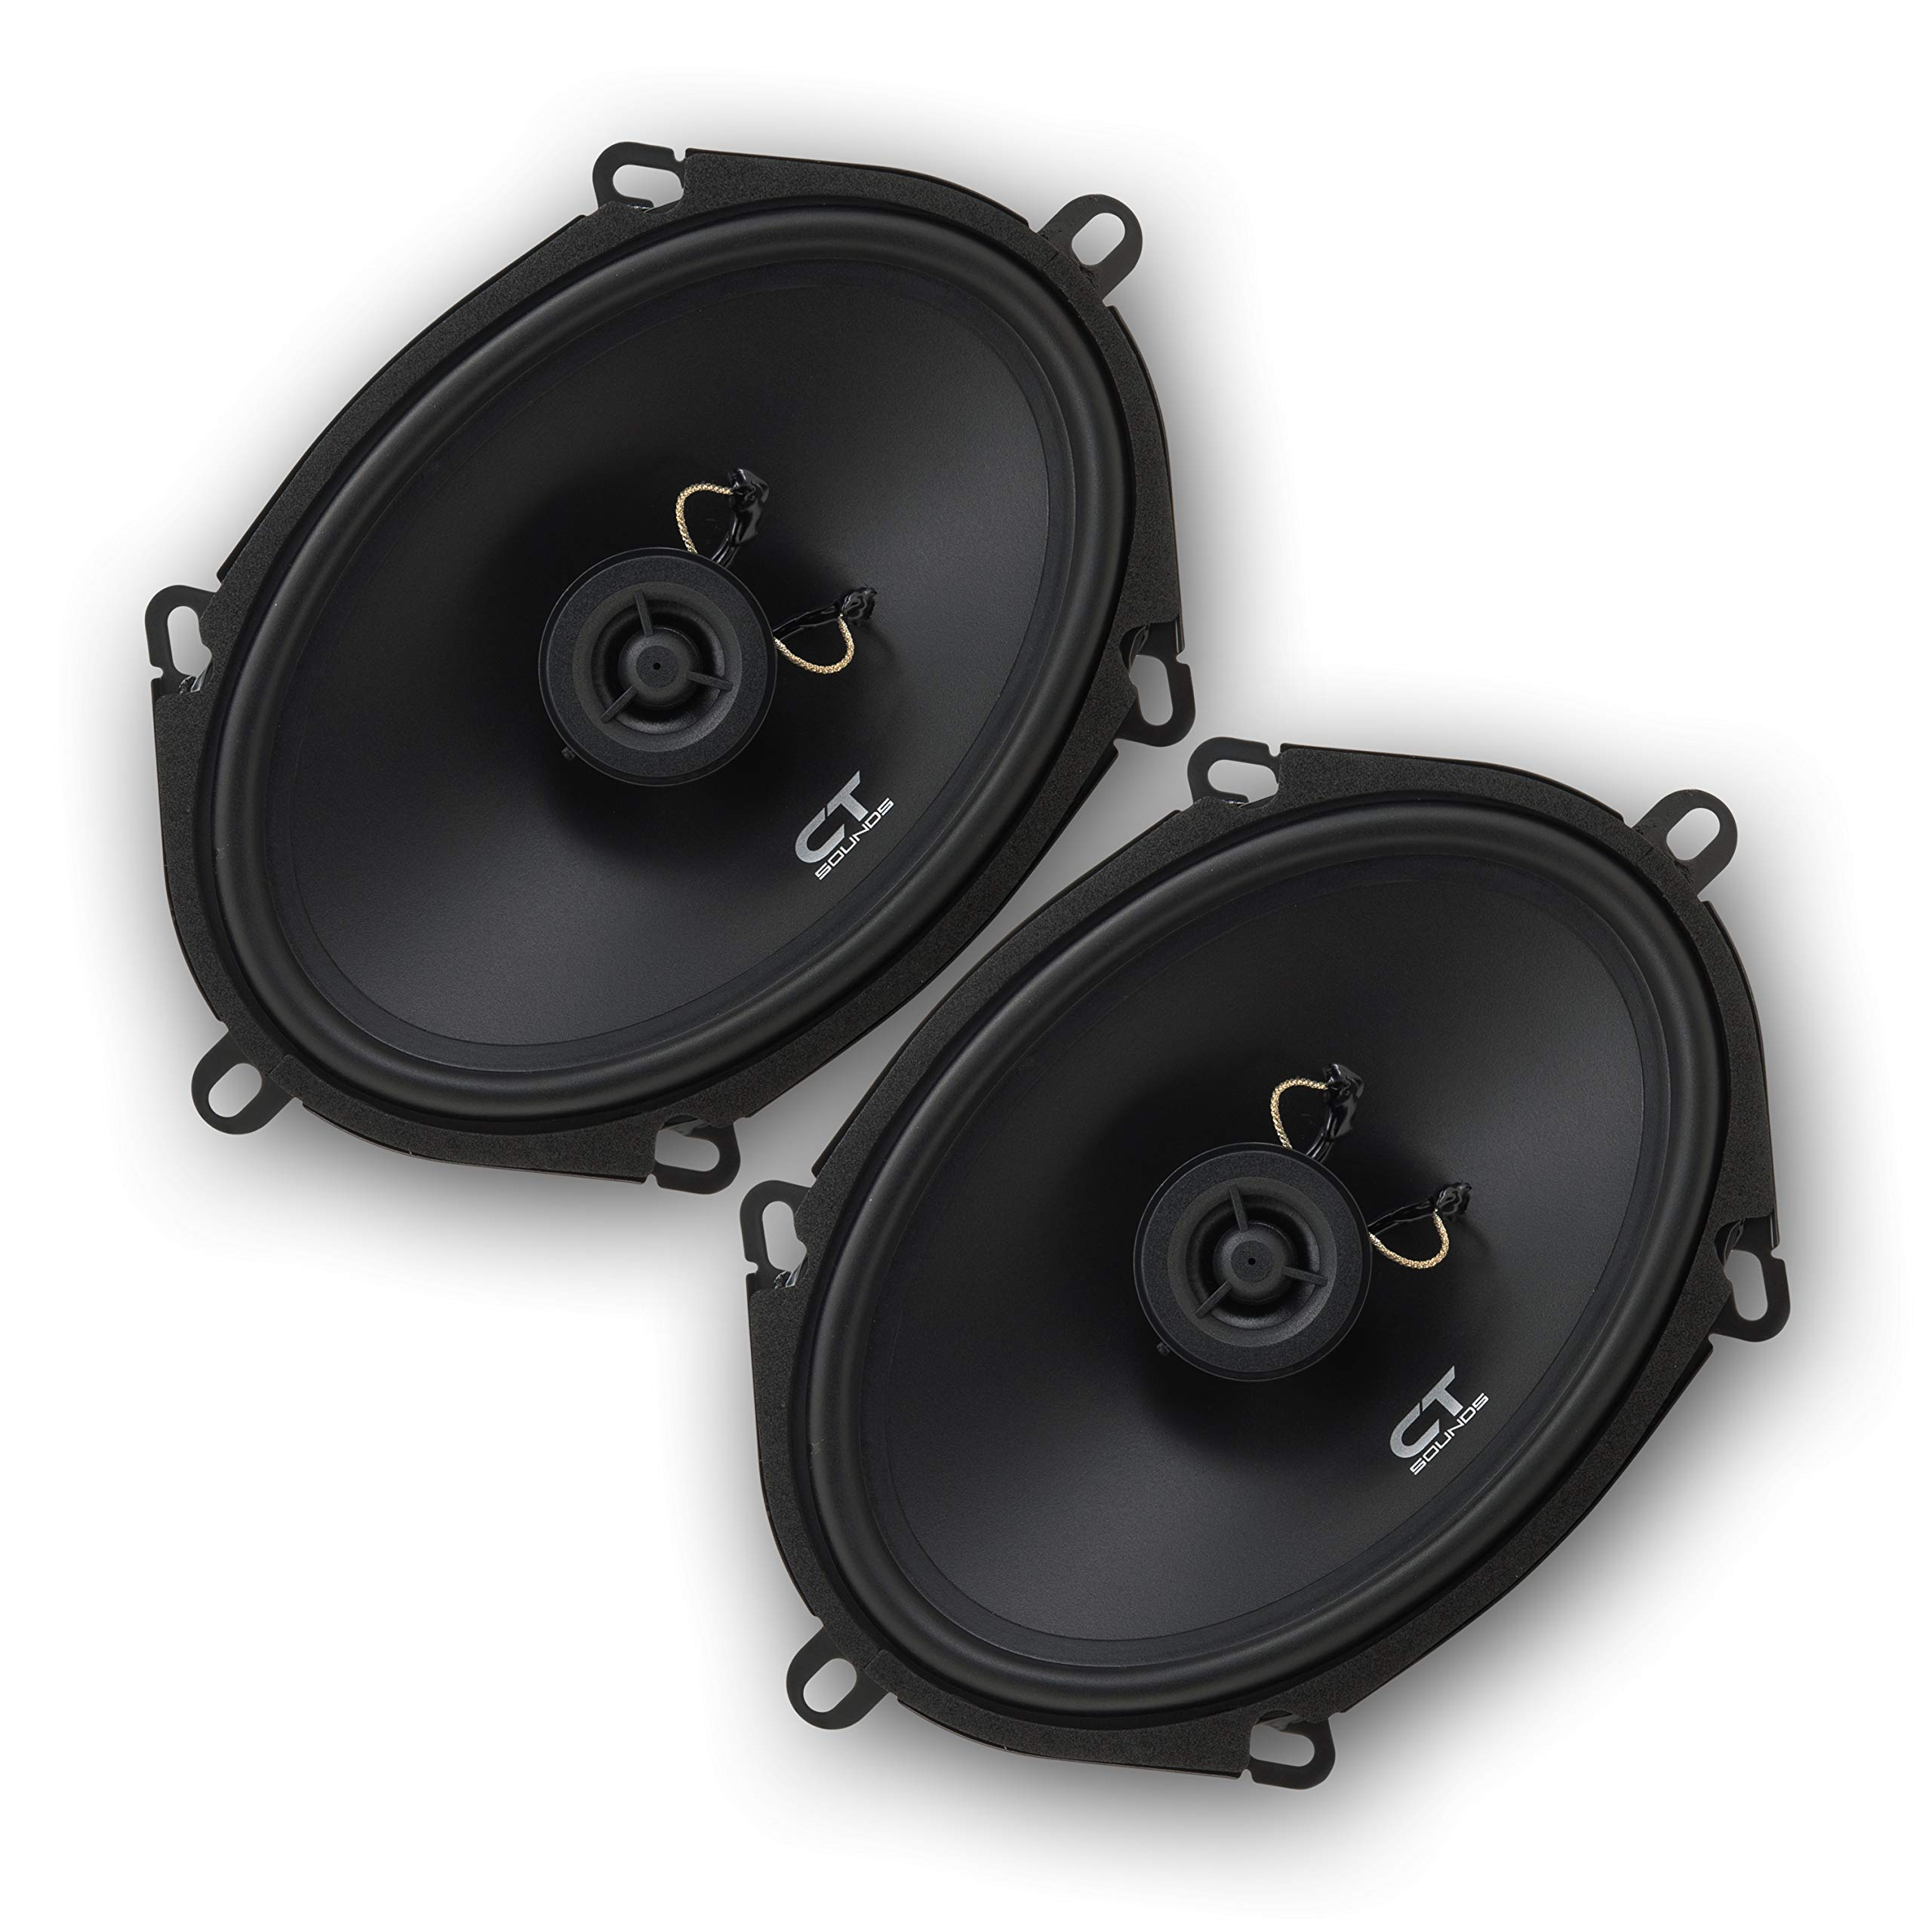 CT Sounds BIO-5X7-COX 5x7 Inch Coaxial Car Speakers, 120 Watts Max, Pair